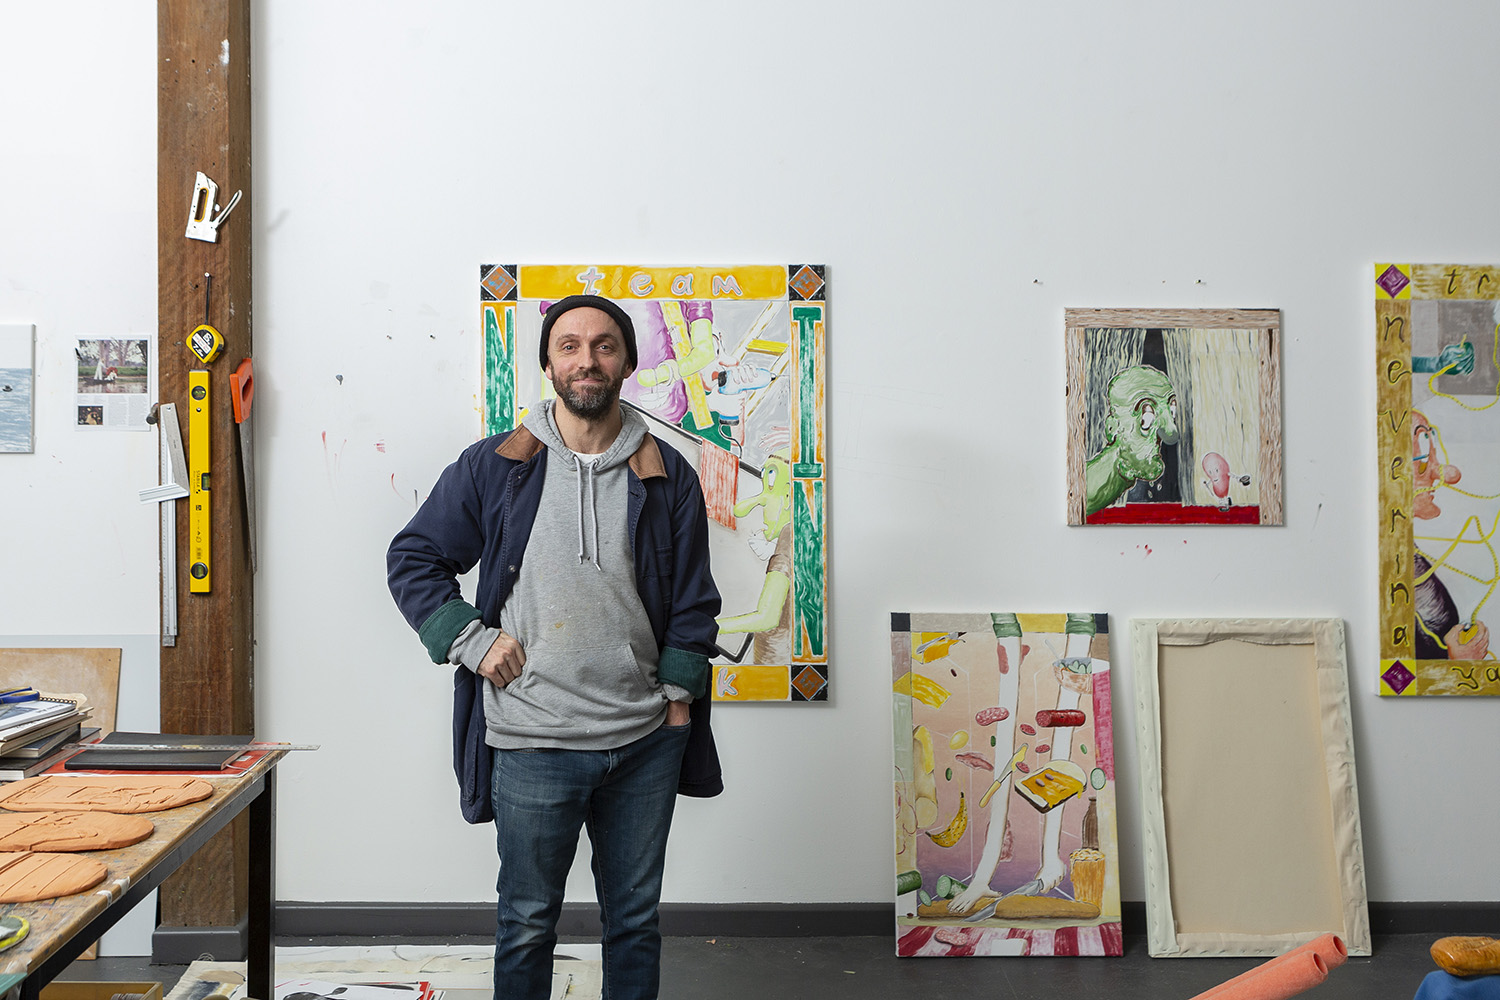 2019 One Year Studio Artist Chris Dolman in his Artspace Studio. Photo Jessica Maurer